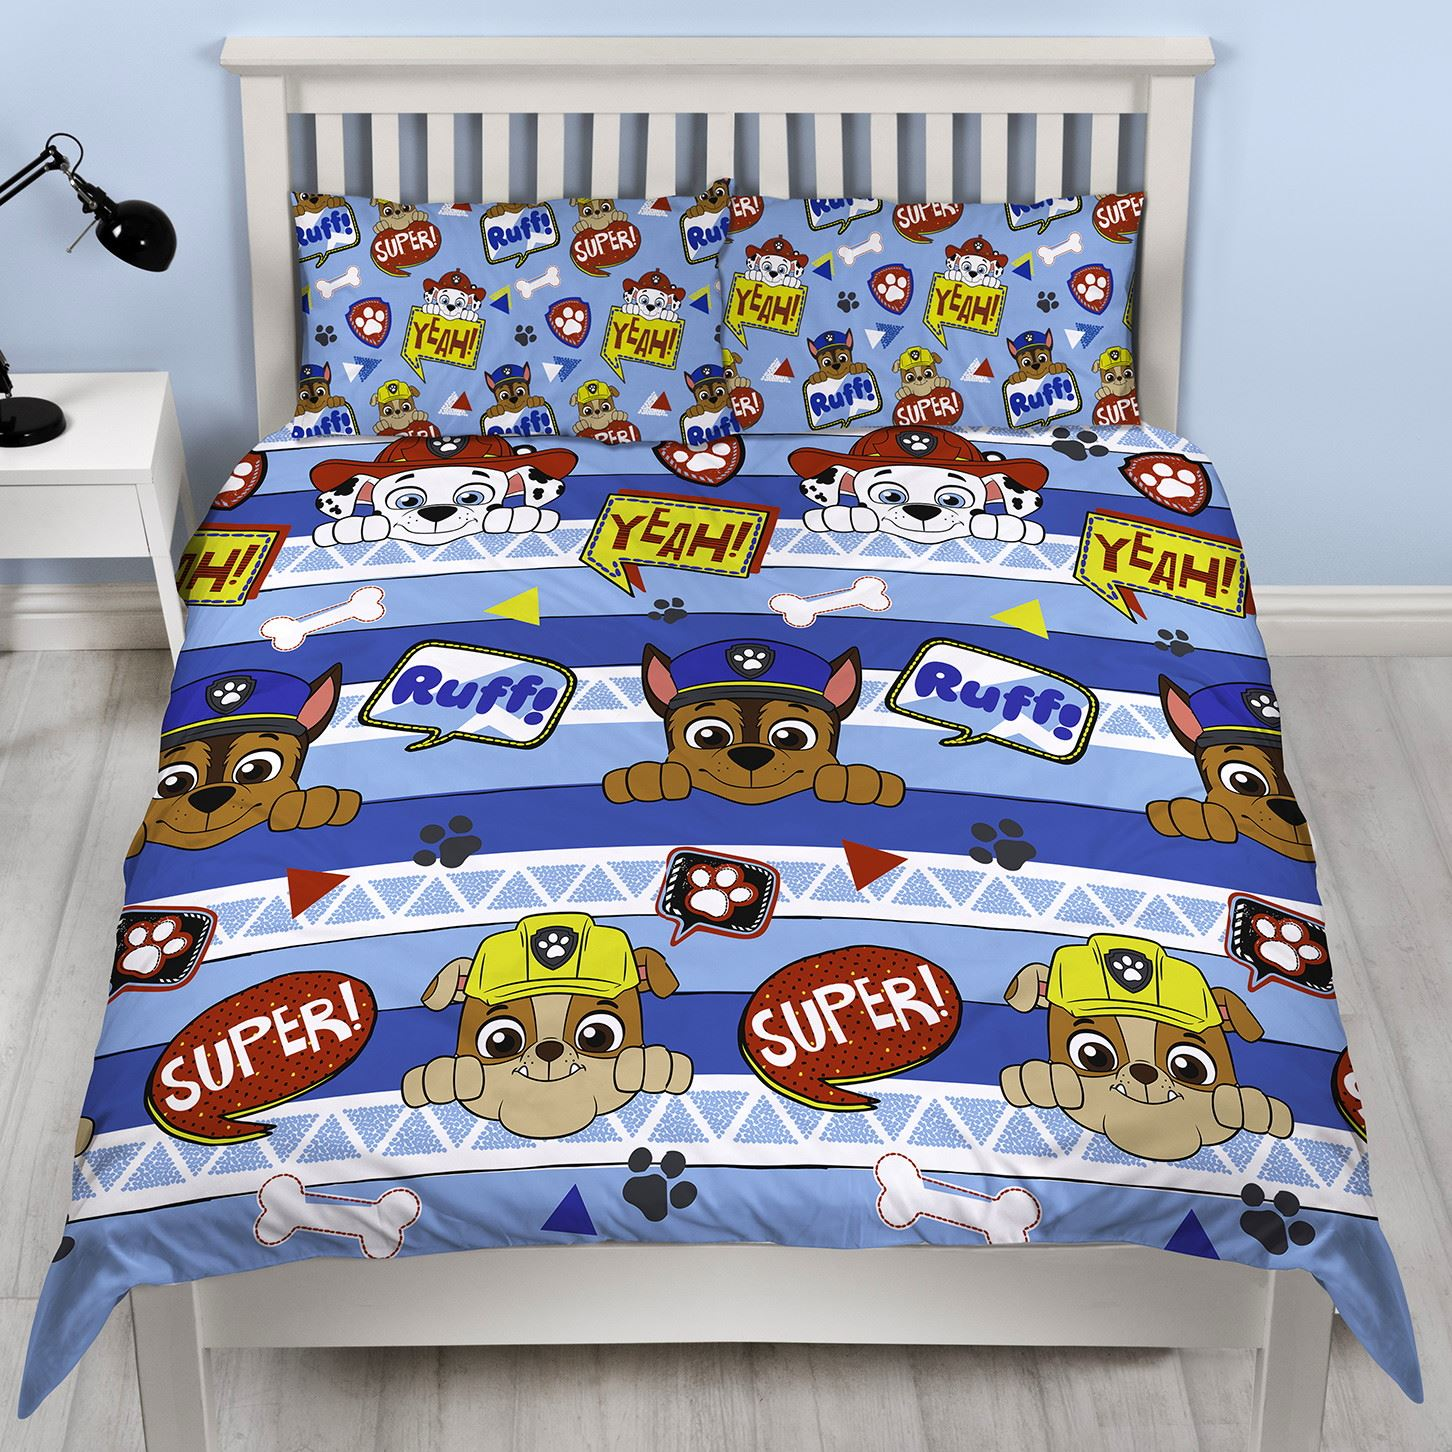 Official-Paw-Patrol-Licensed-Duvet-Covers-Single-Double-Chase-Skye-Marshall thumbnail 23